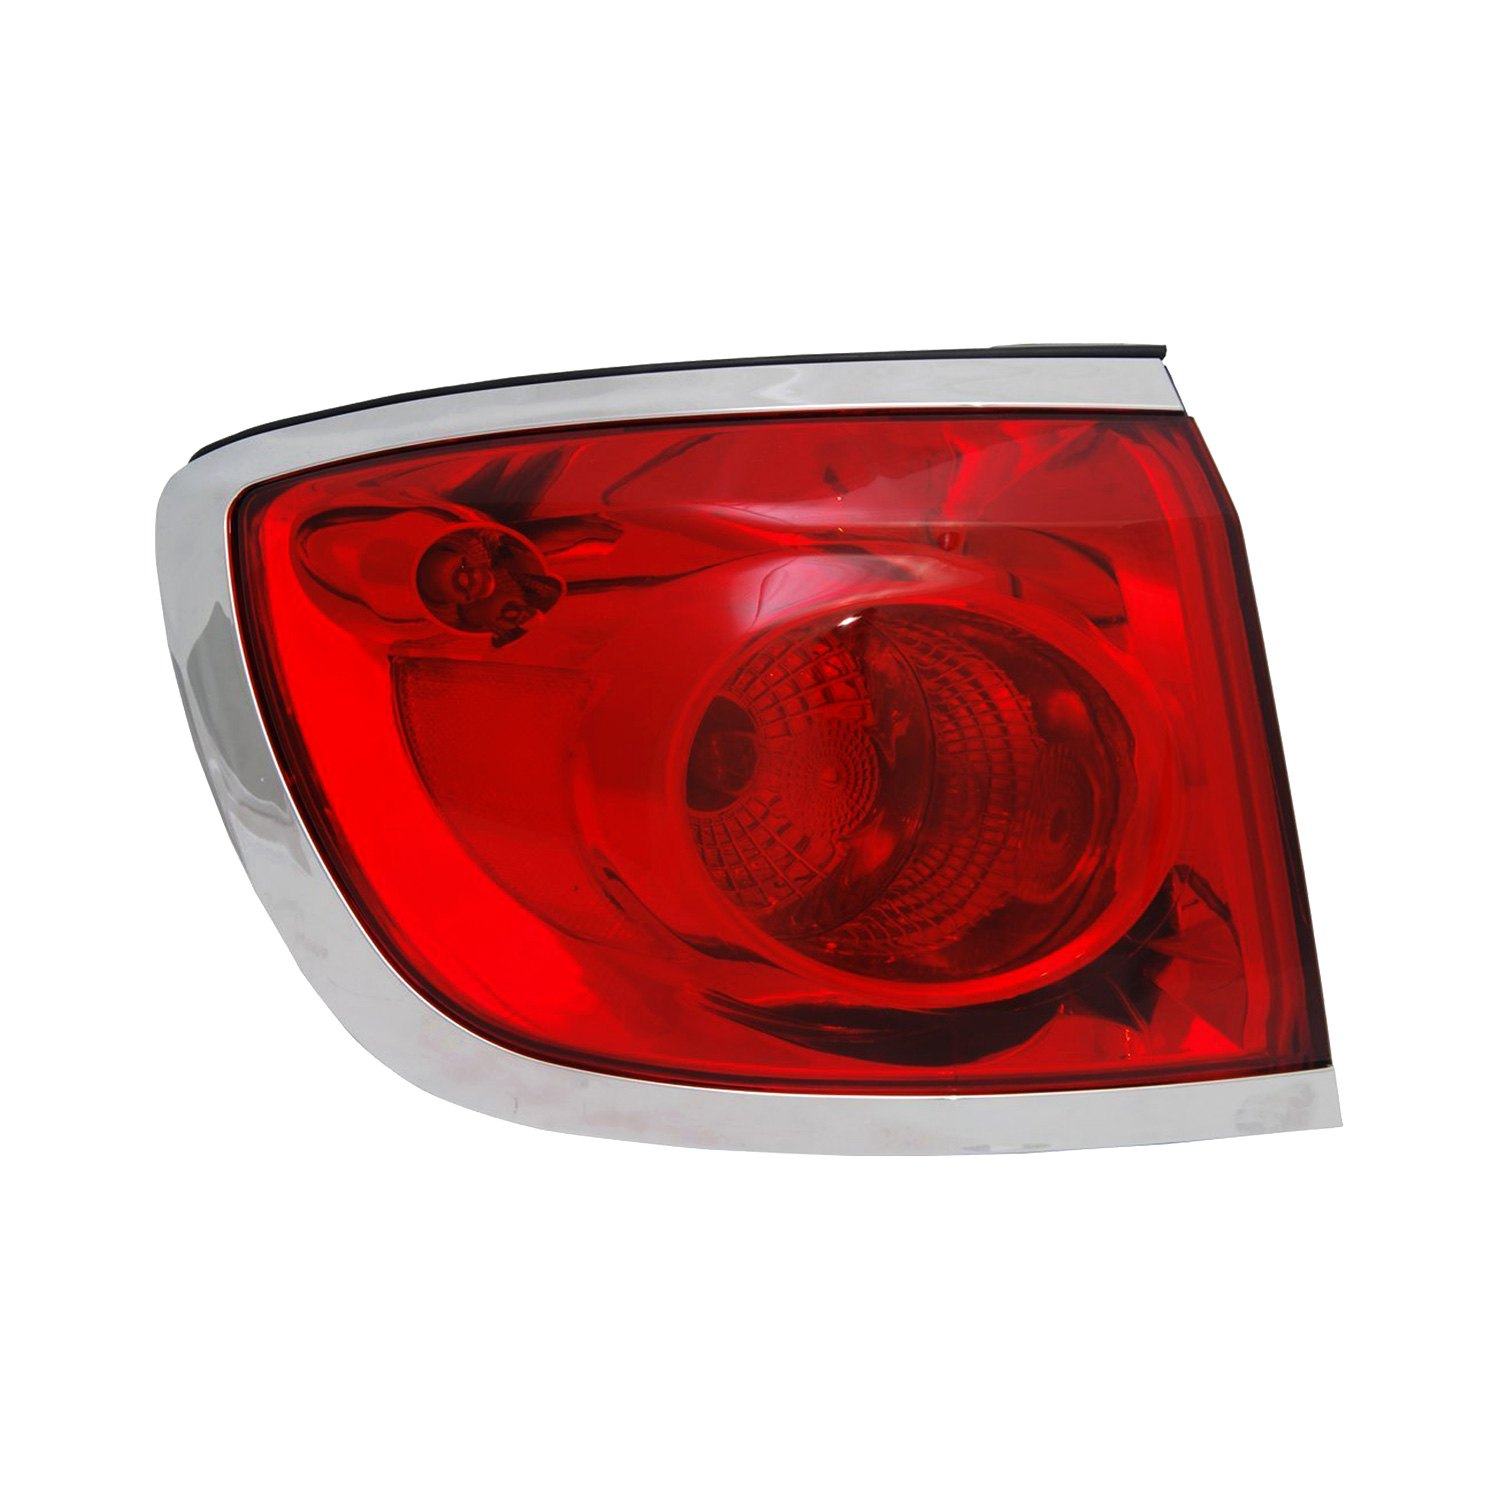 Buick Enclave 2010 Replacement Tail Light